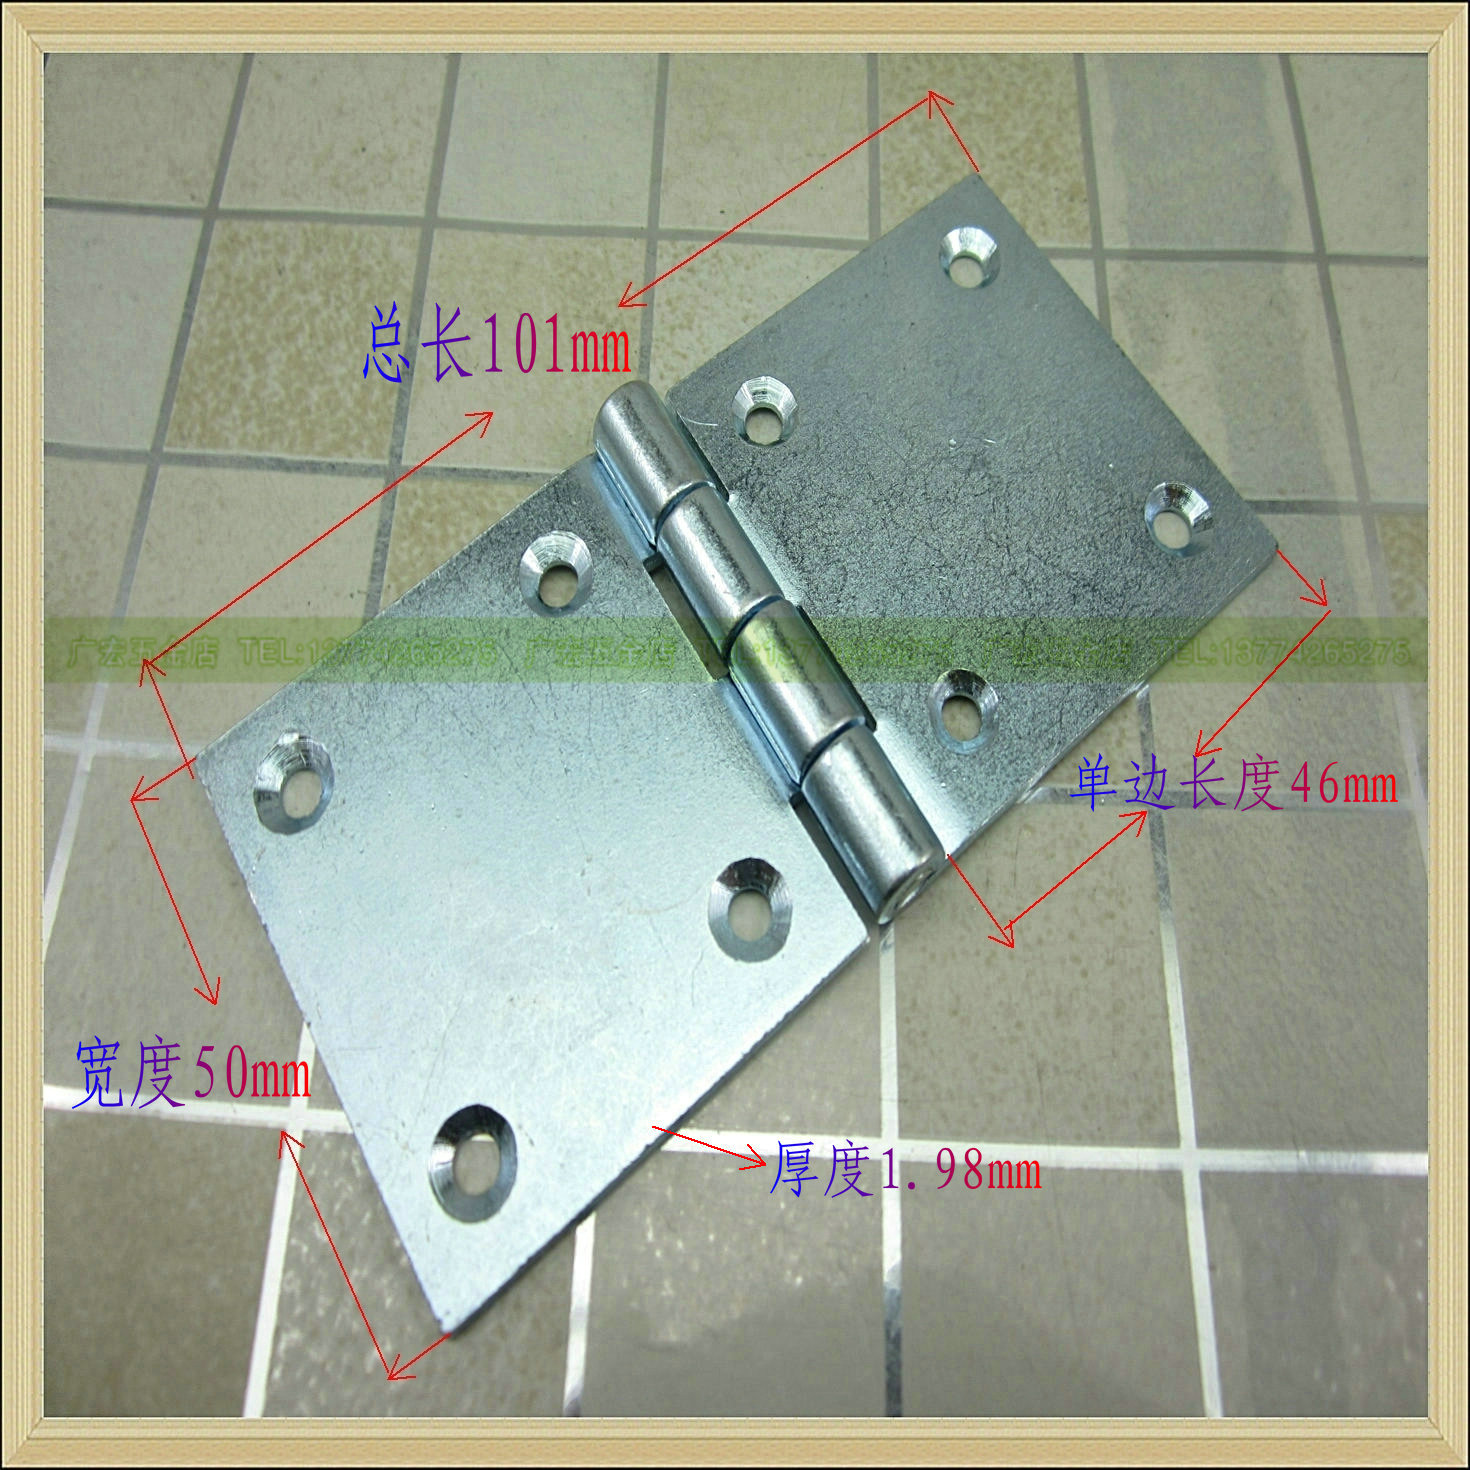 Guanghong hardware extended flap hinge flap hinge Lian furniture hardware accessories